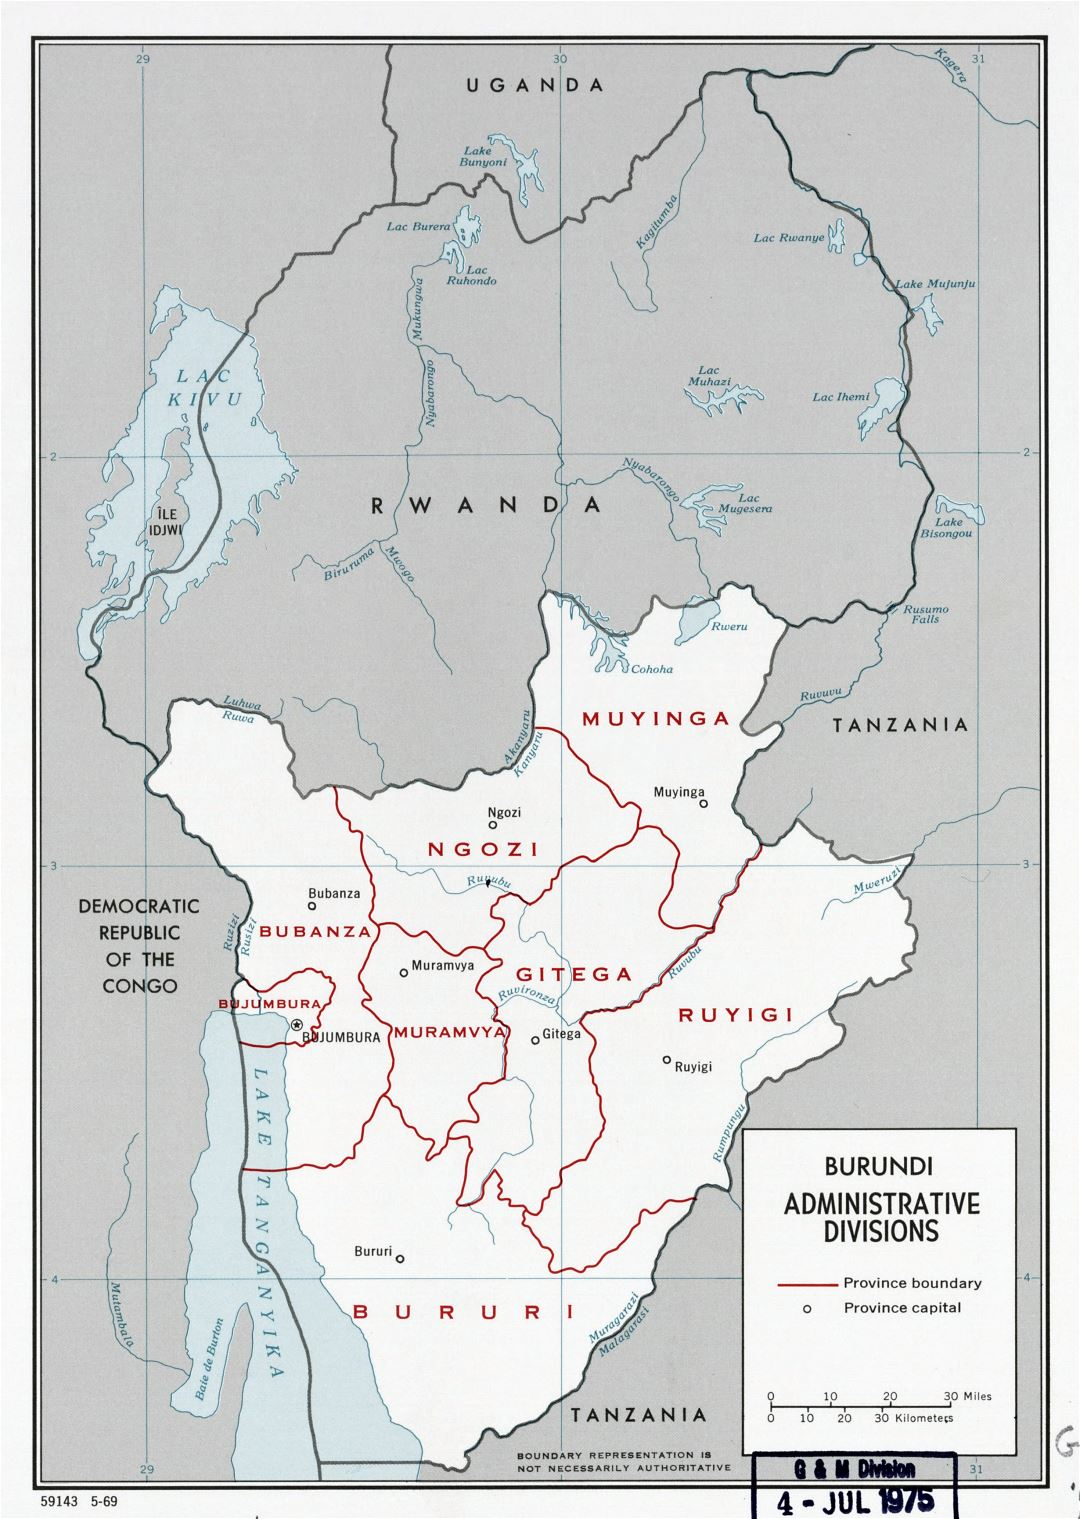 Large scale administrative divisions map of Burundi - 1969